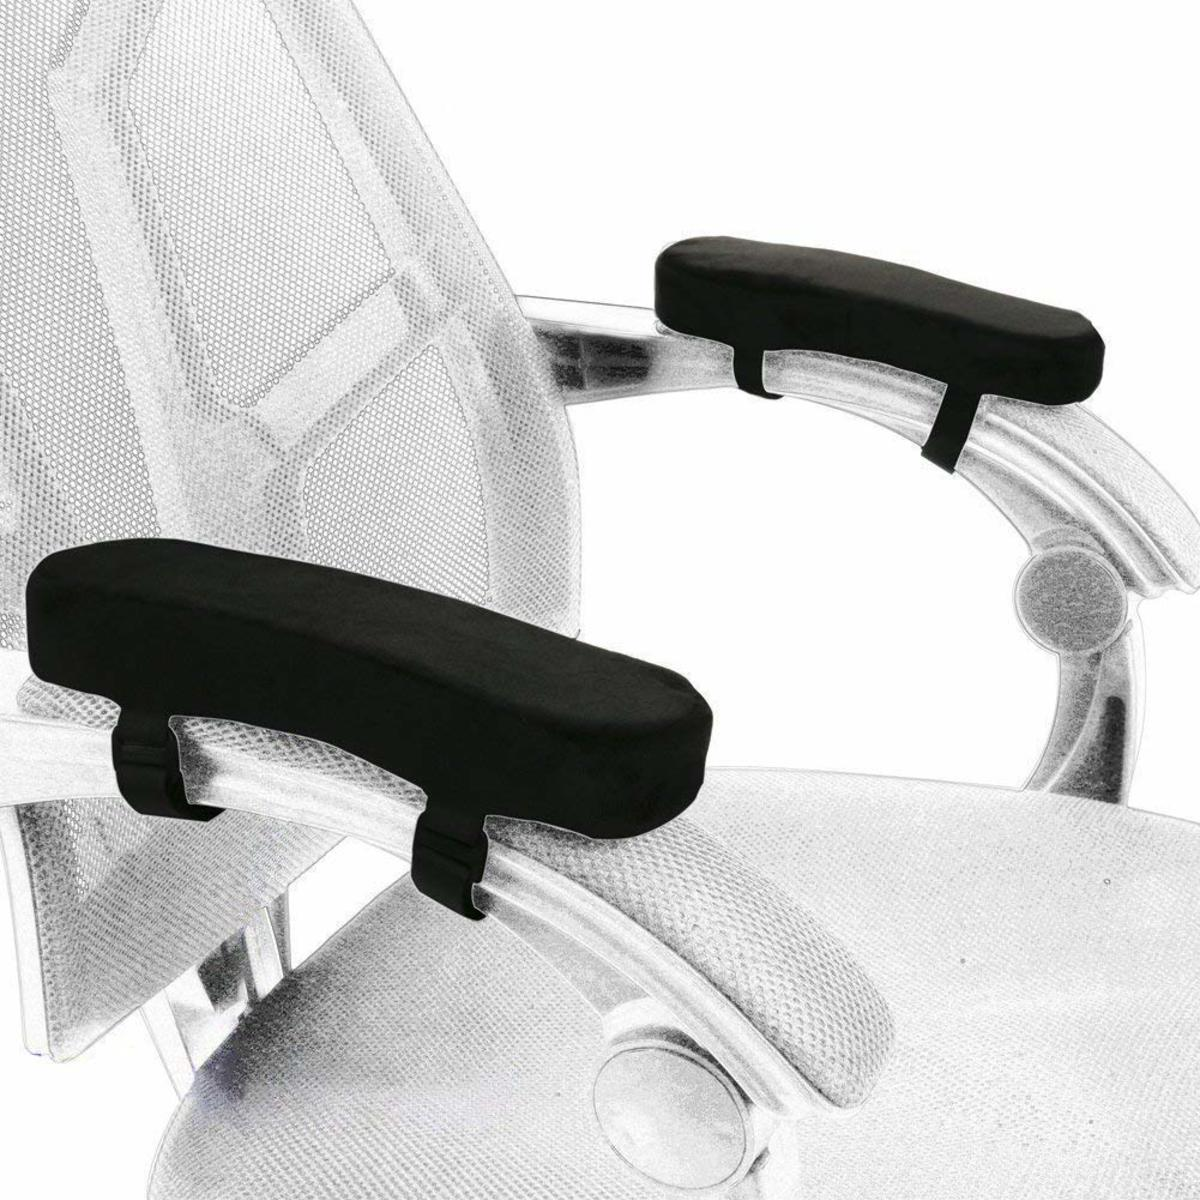 【Set of 2】Foam Chair Armrest Pad Comfy Office Chair Arm Rest Cover for Elbows Pressure Relief